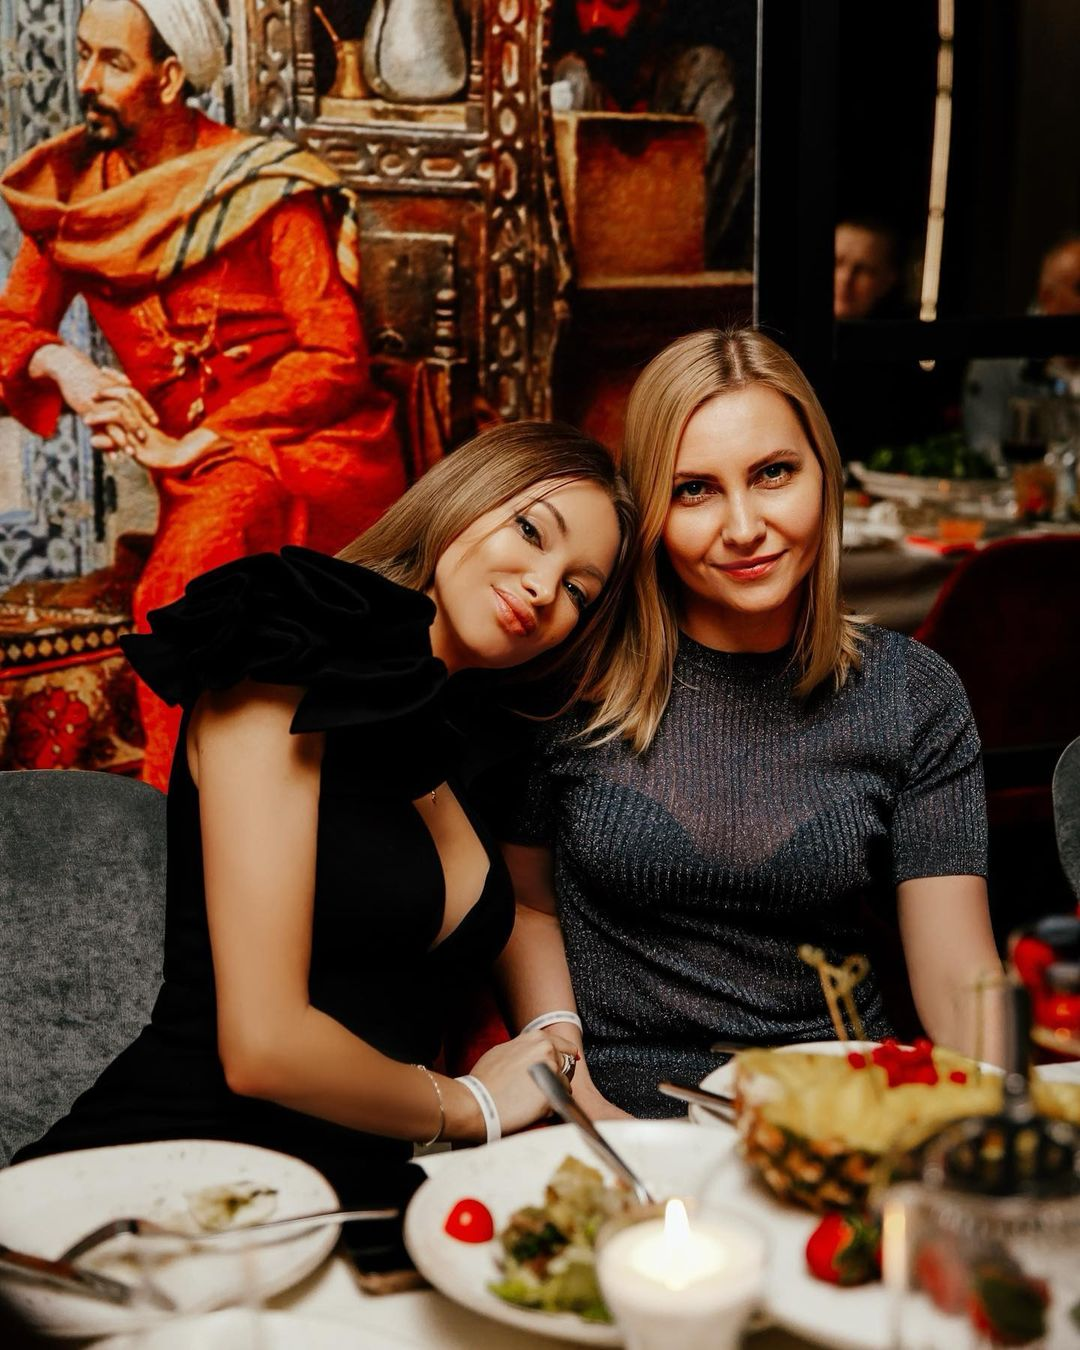 Evgenia Feofilaktova for the first time in a long time posted a photo of her loved one on the blog